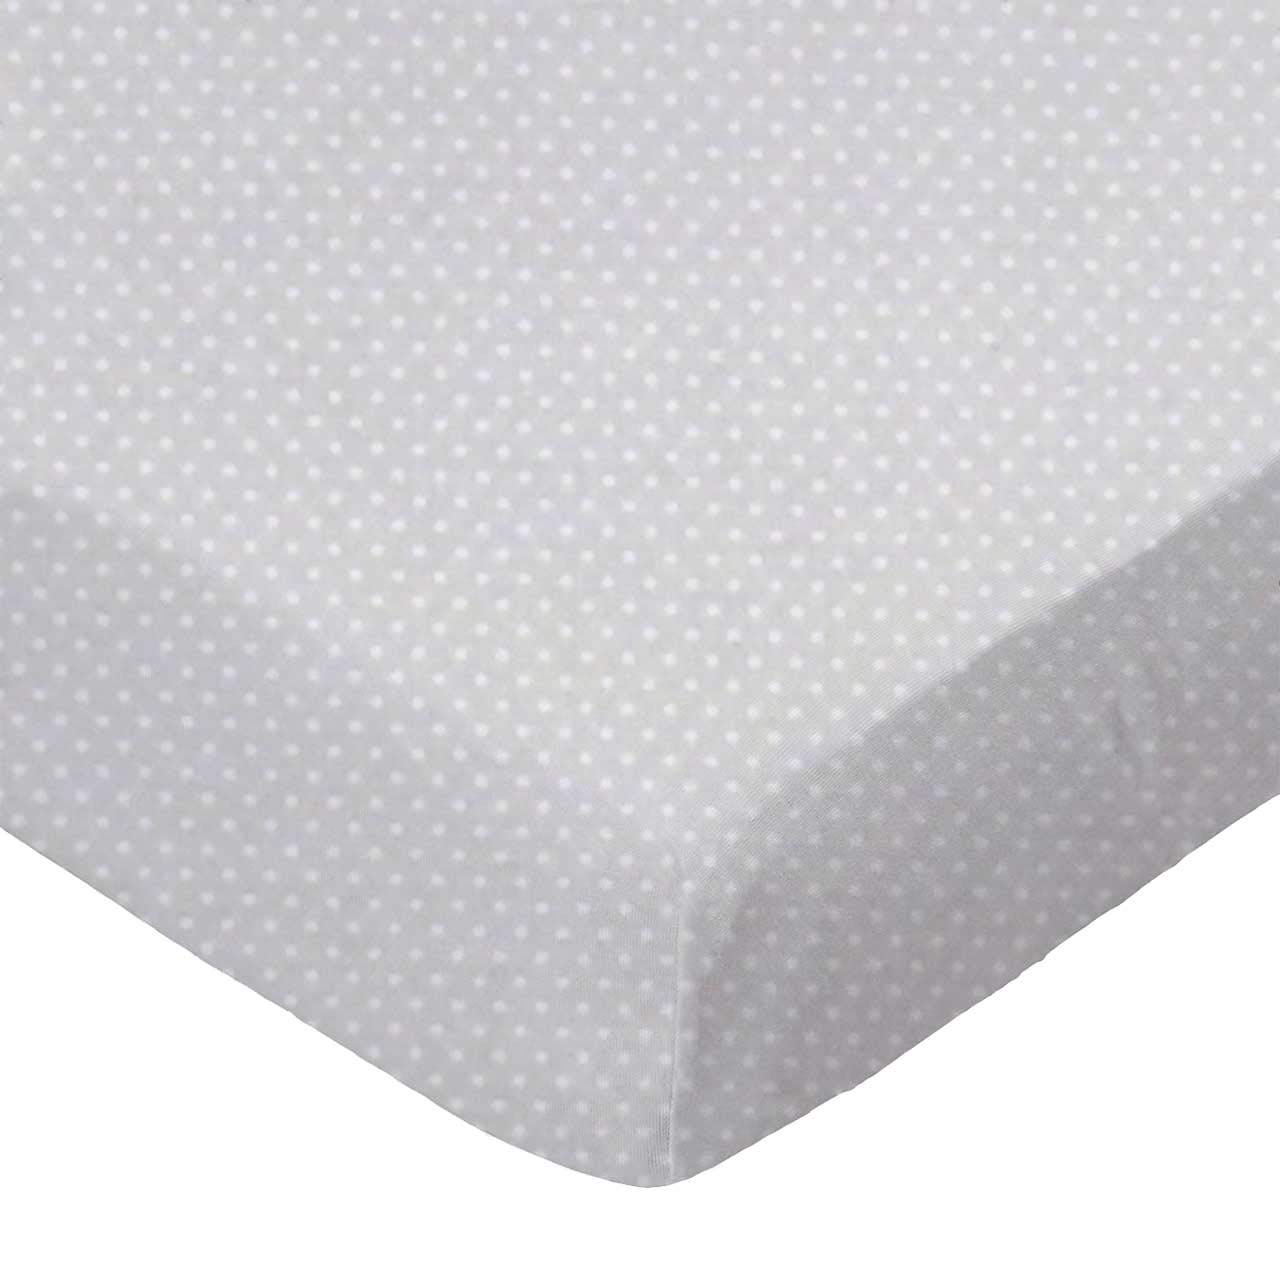 SheetWorld Fitted 100% Cotton Percale Cradle Sheet 18 x 36, Pindots Grey Woven, Made in USA by SHEETWORLD.COM